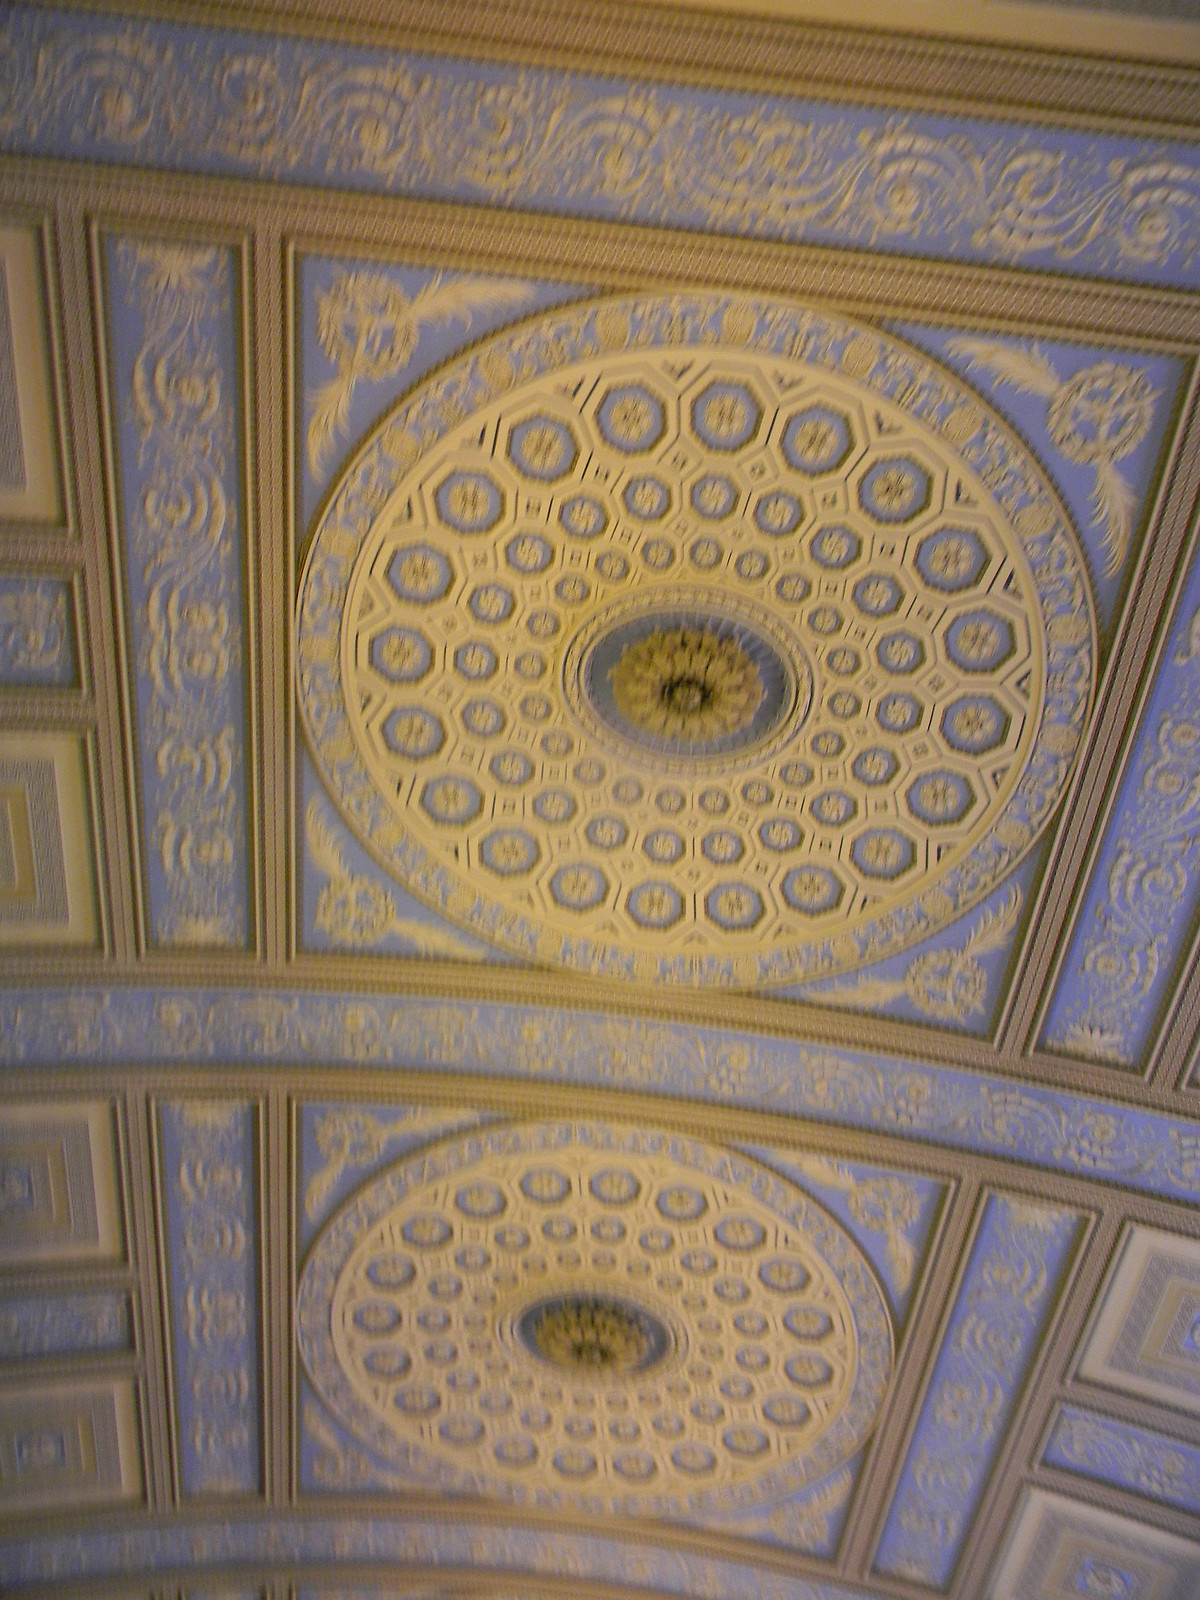 Chapel ceiling Blackheath to Canary Wharf